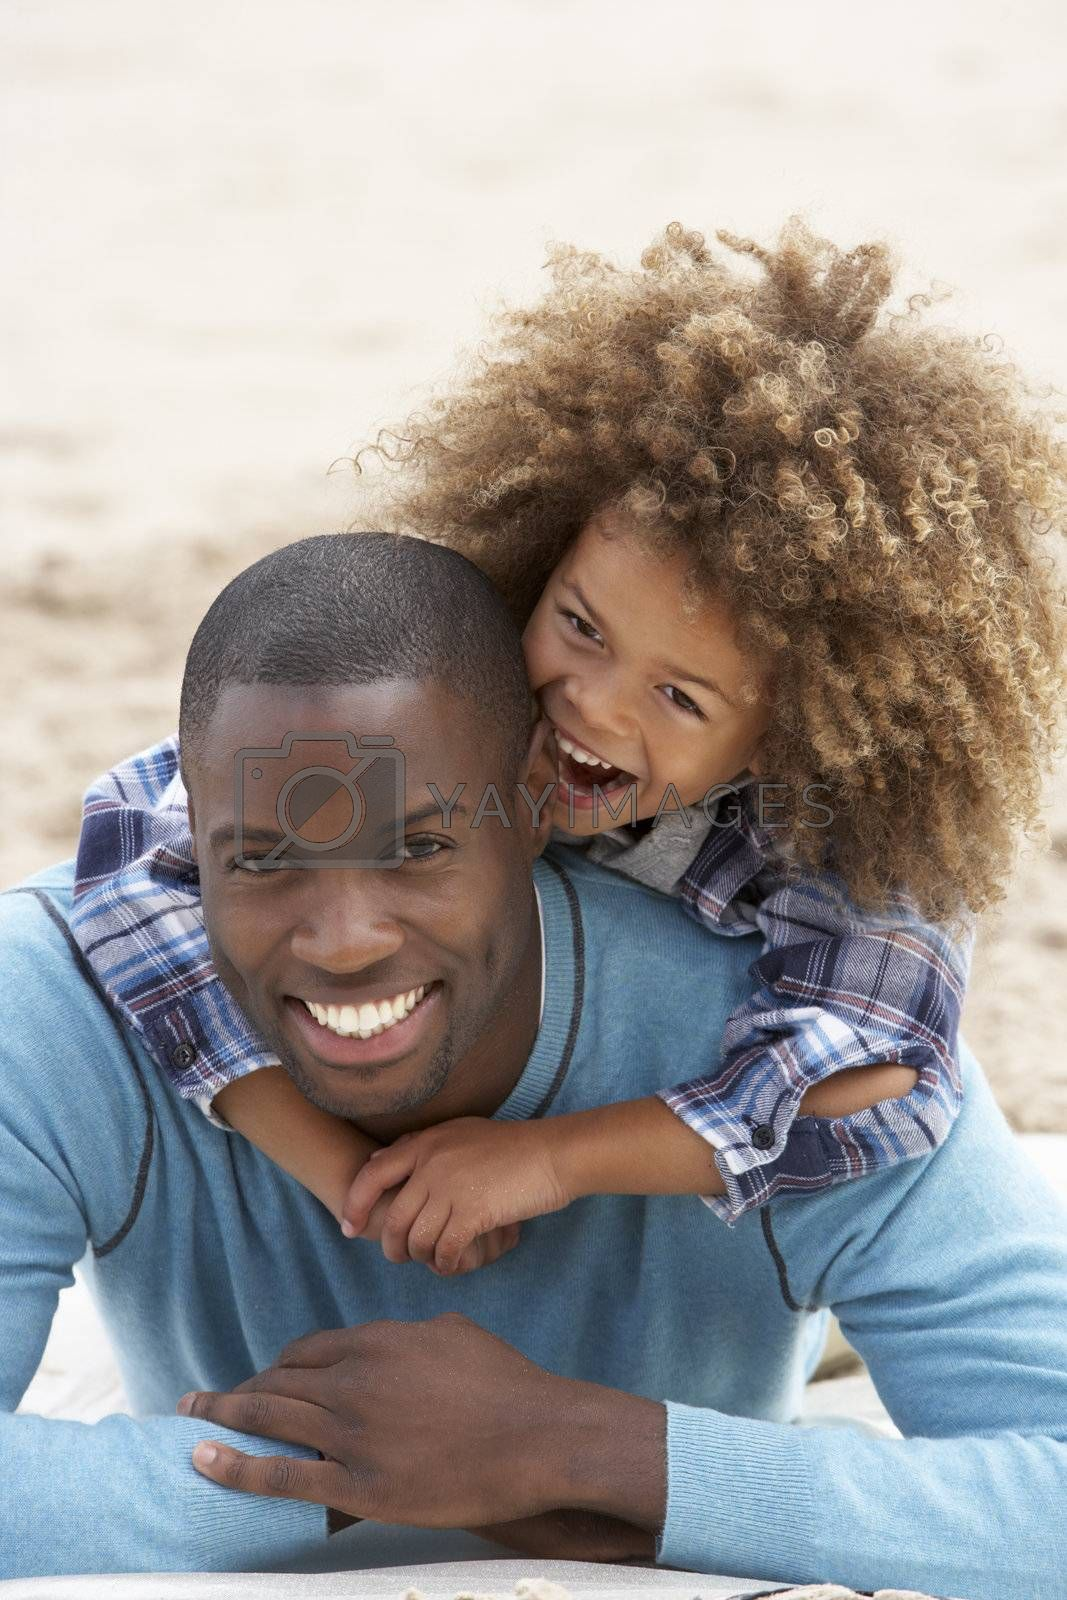 Royalty free image of Father and son playing piggyback on beach by omg_images